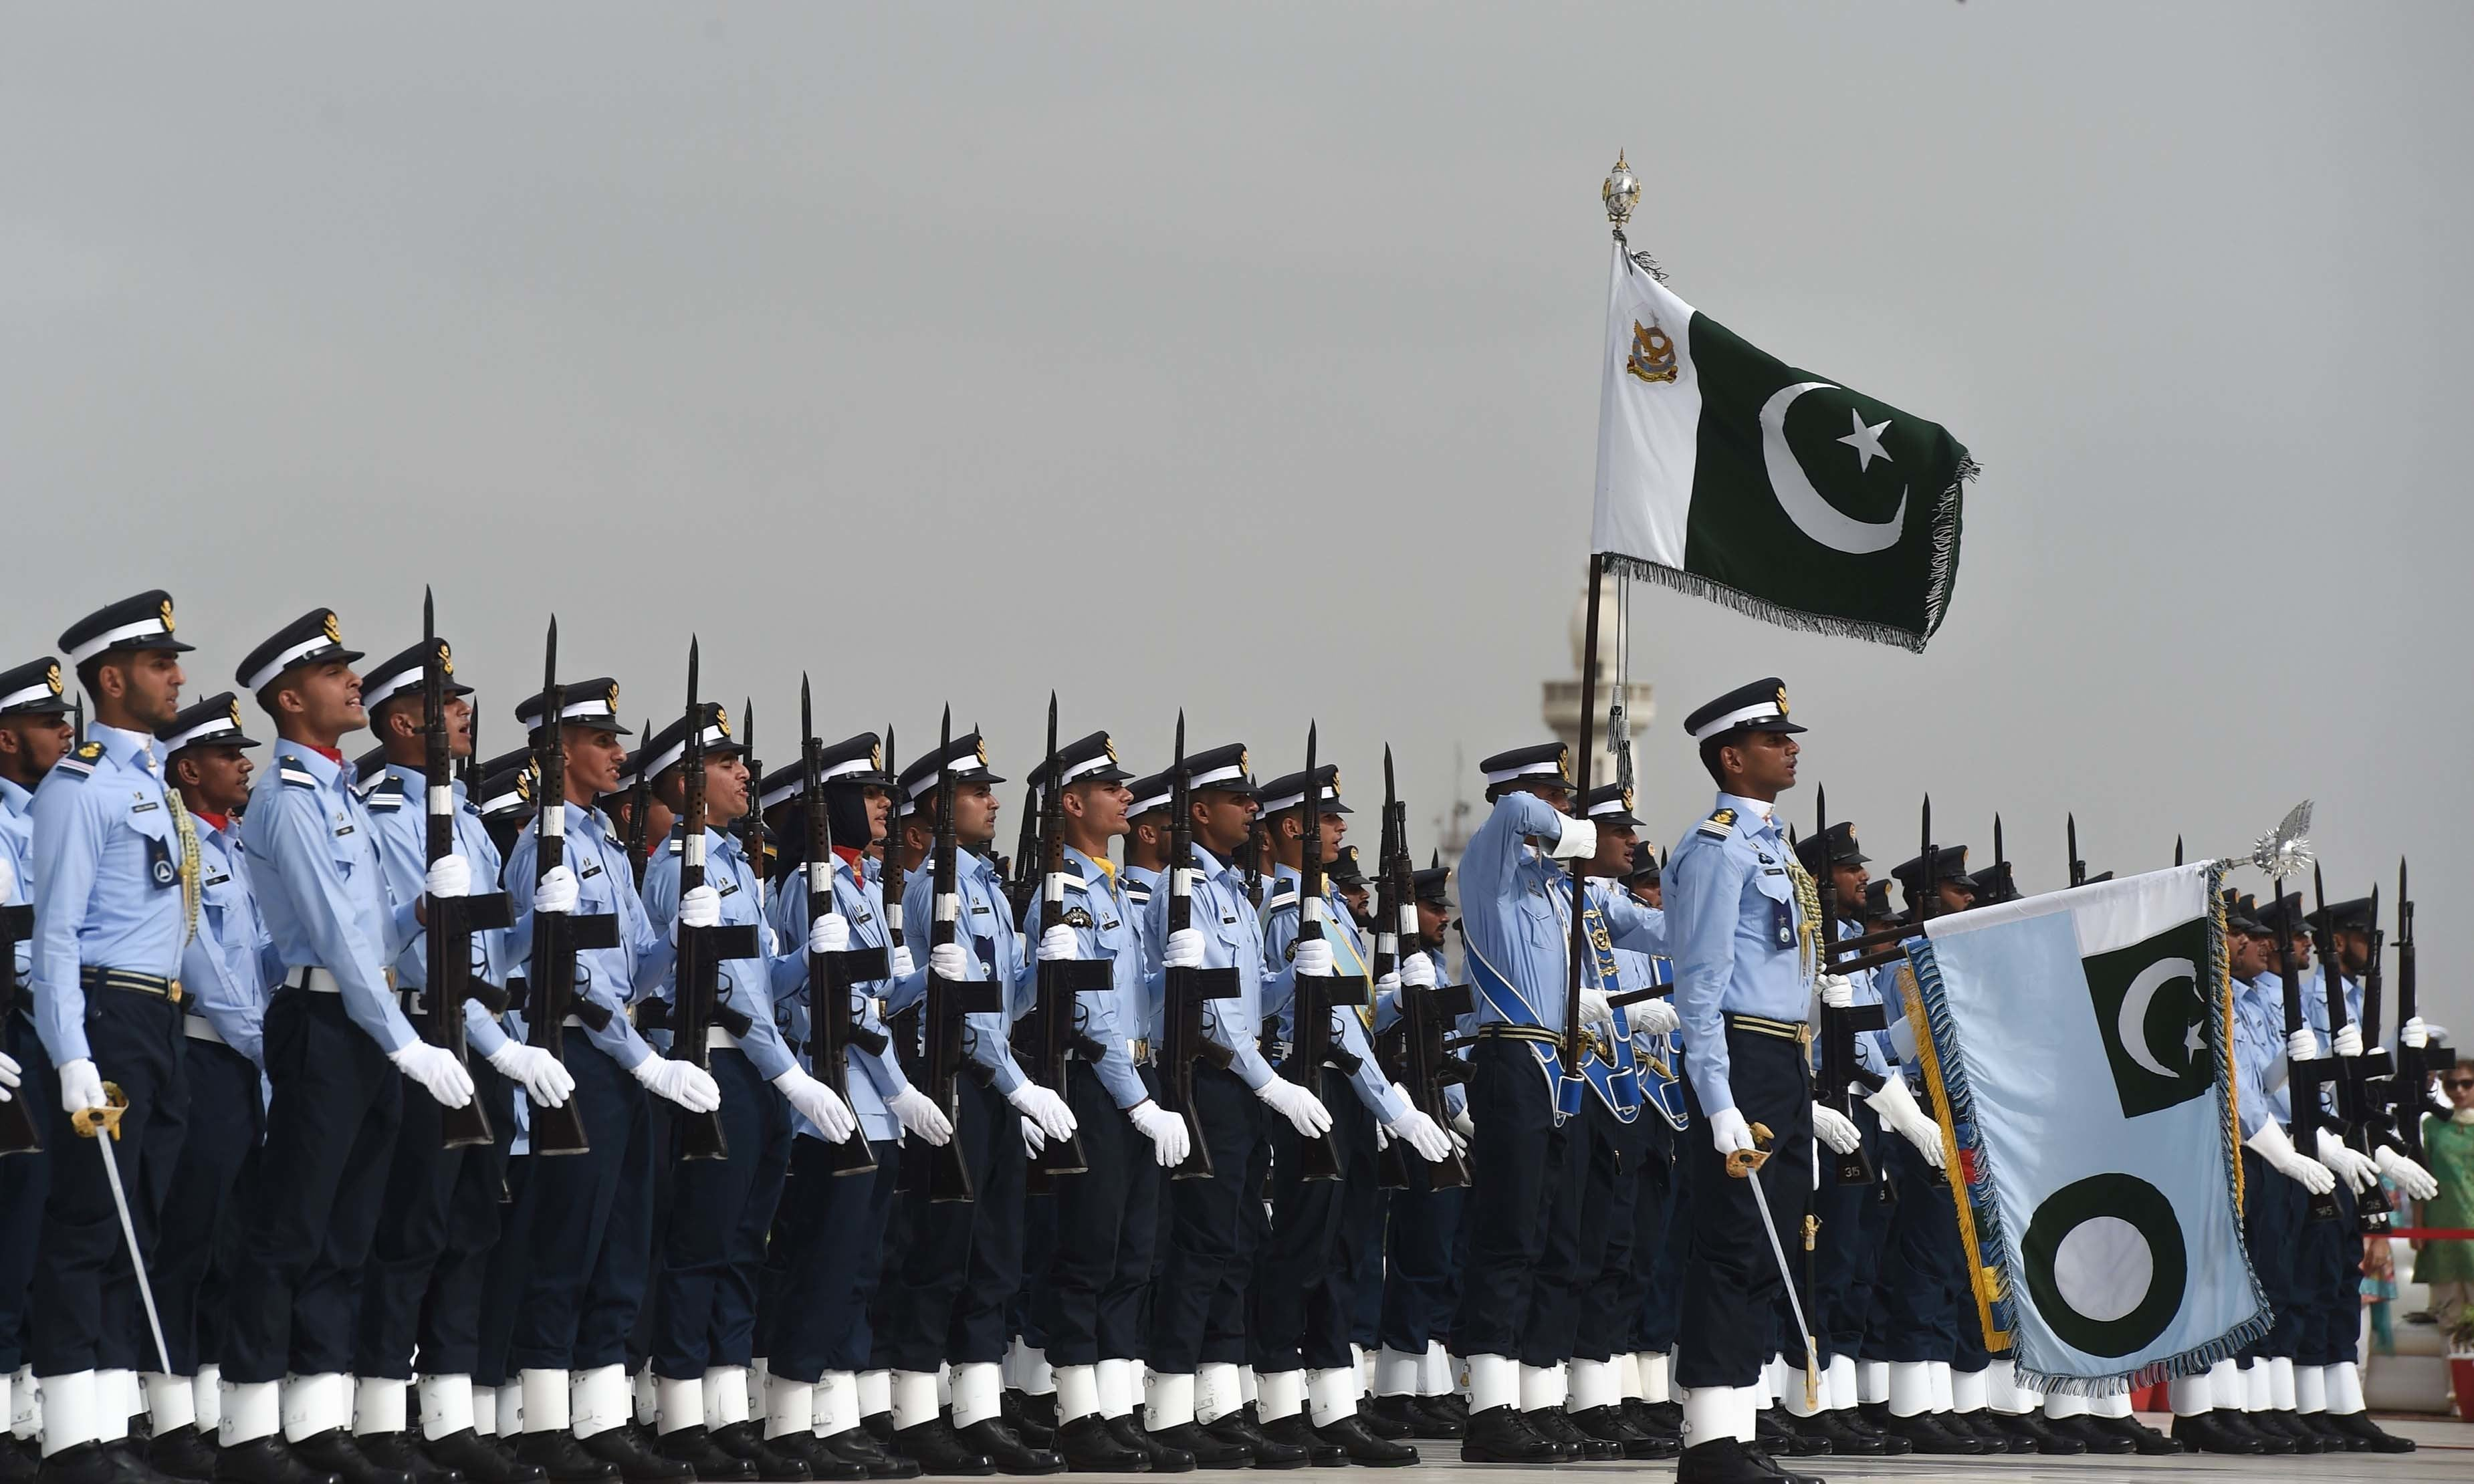 Pakistan Air Force cadets march next to Quaid-i-Azam Mohammad Ali Jinnah's mausoleum. — AFP